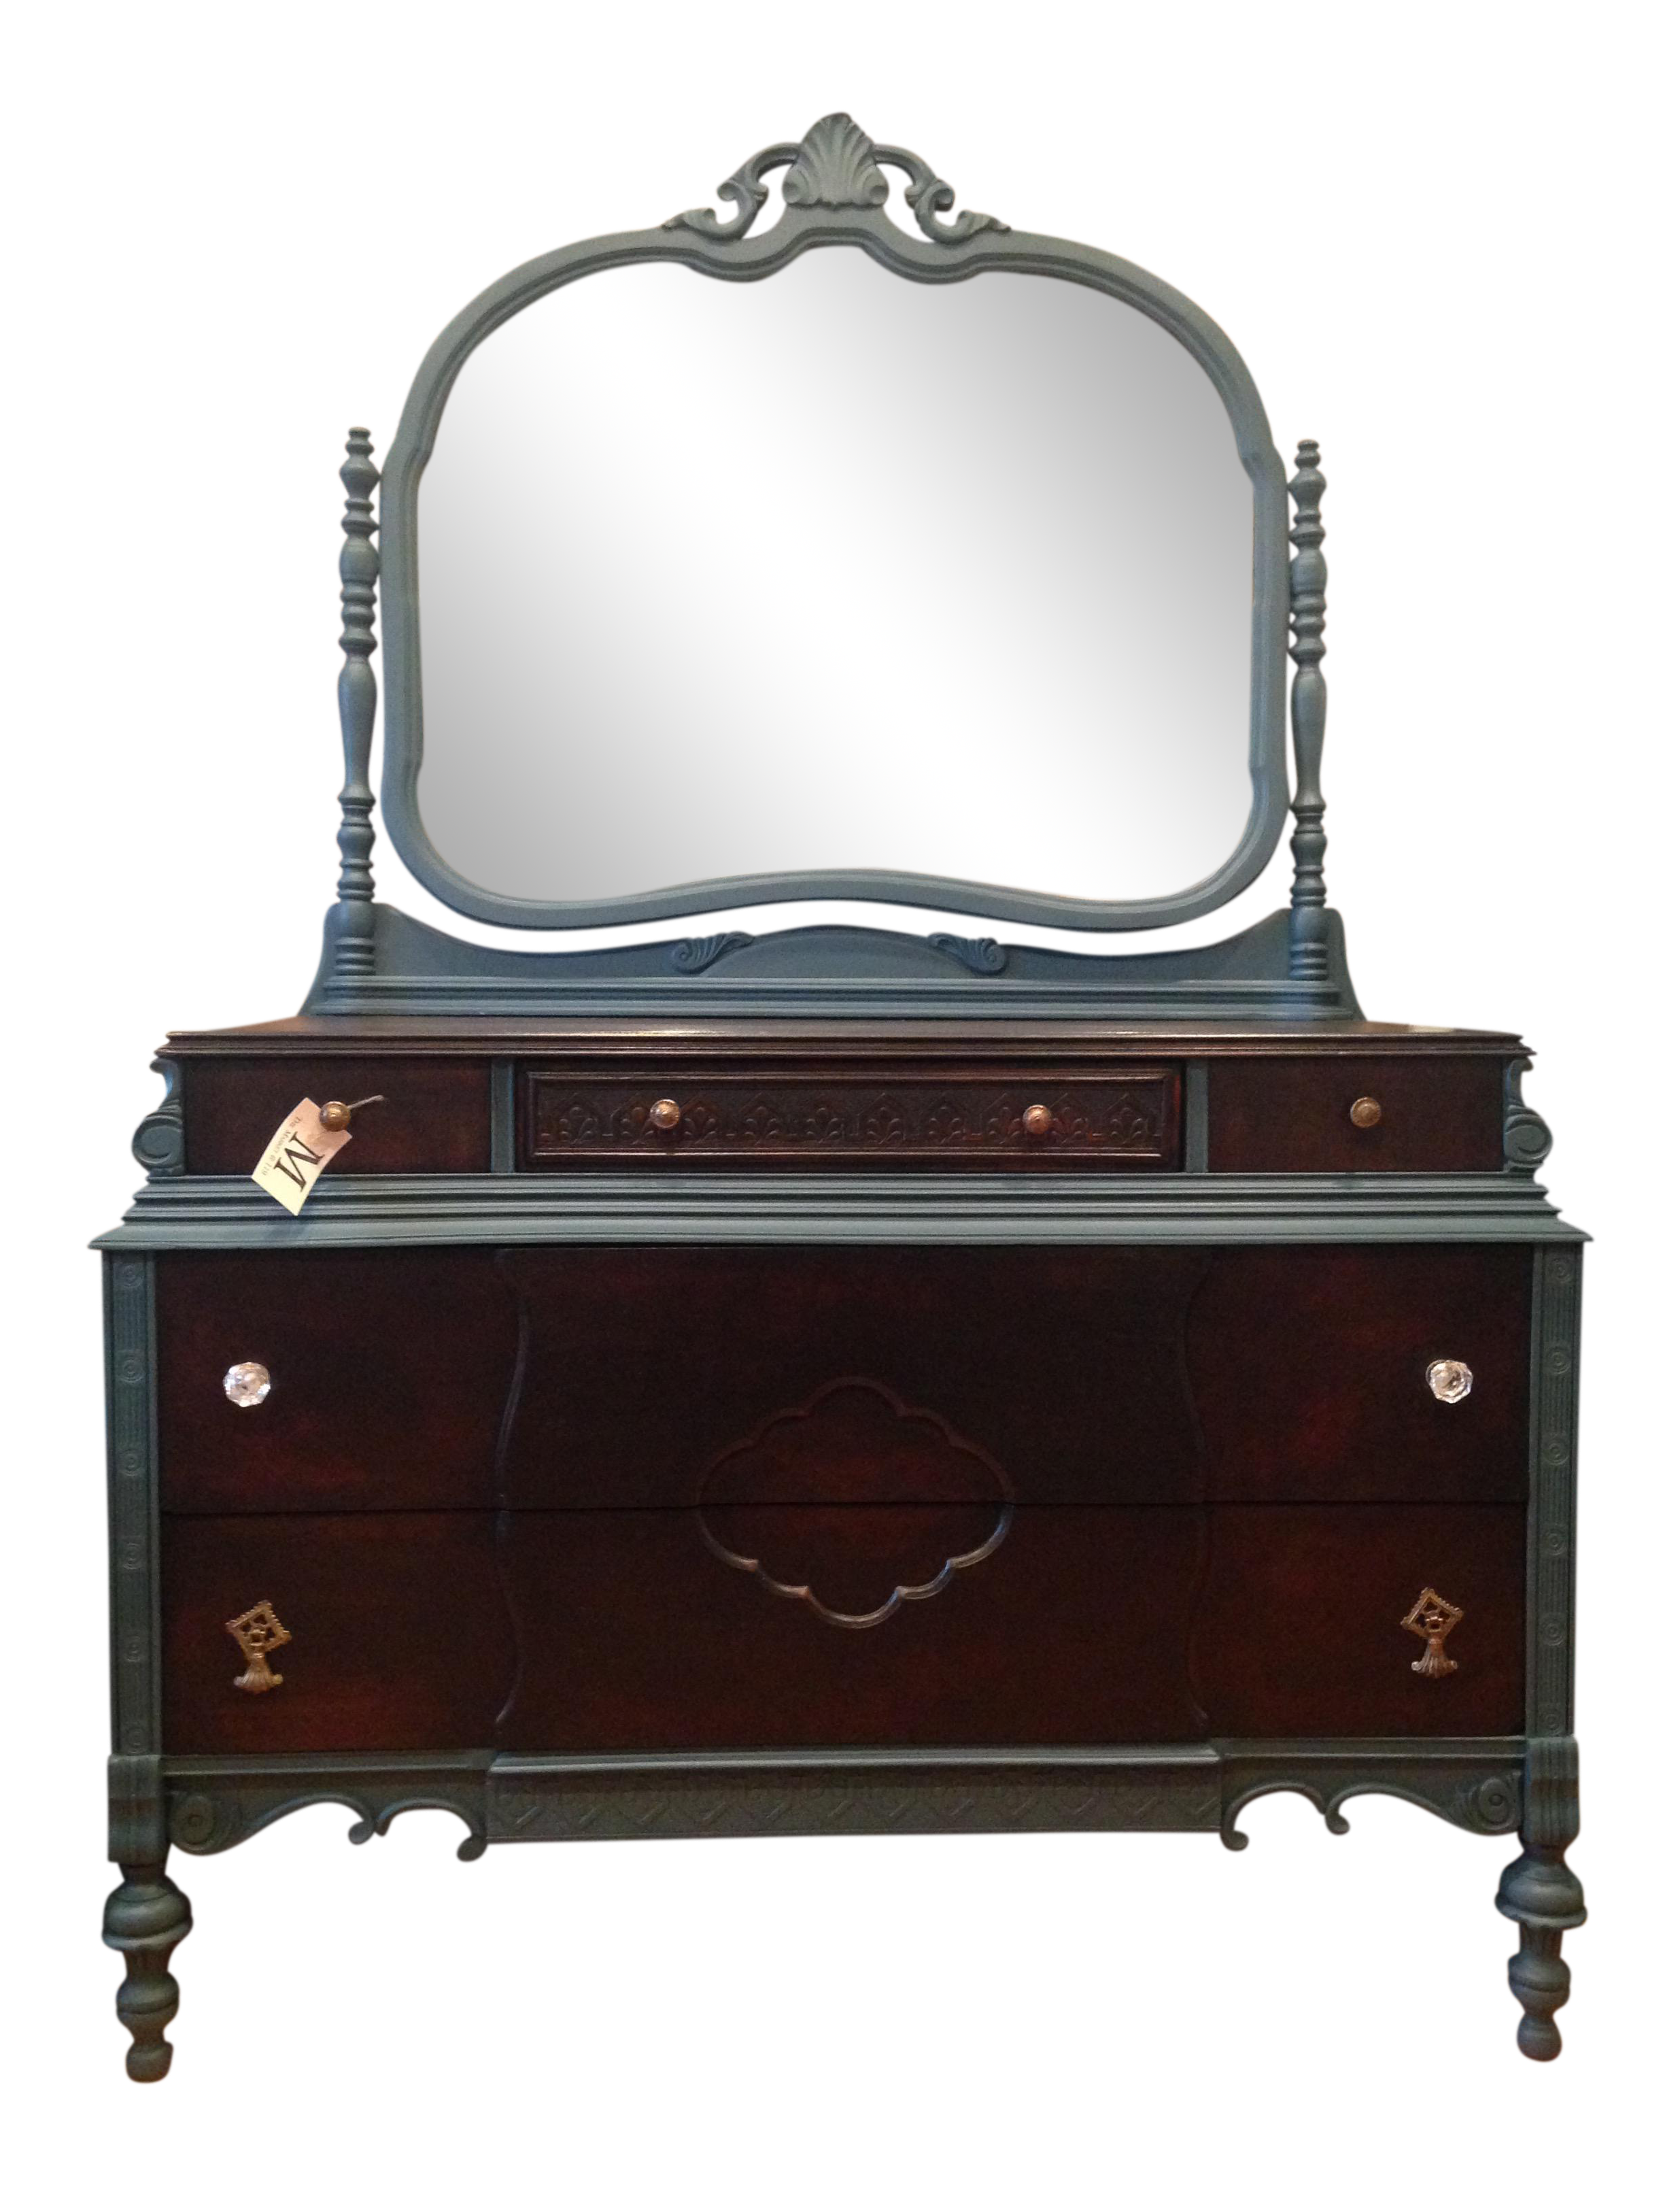 old life refurbished a divine on decor dime back give new an to bring dresser